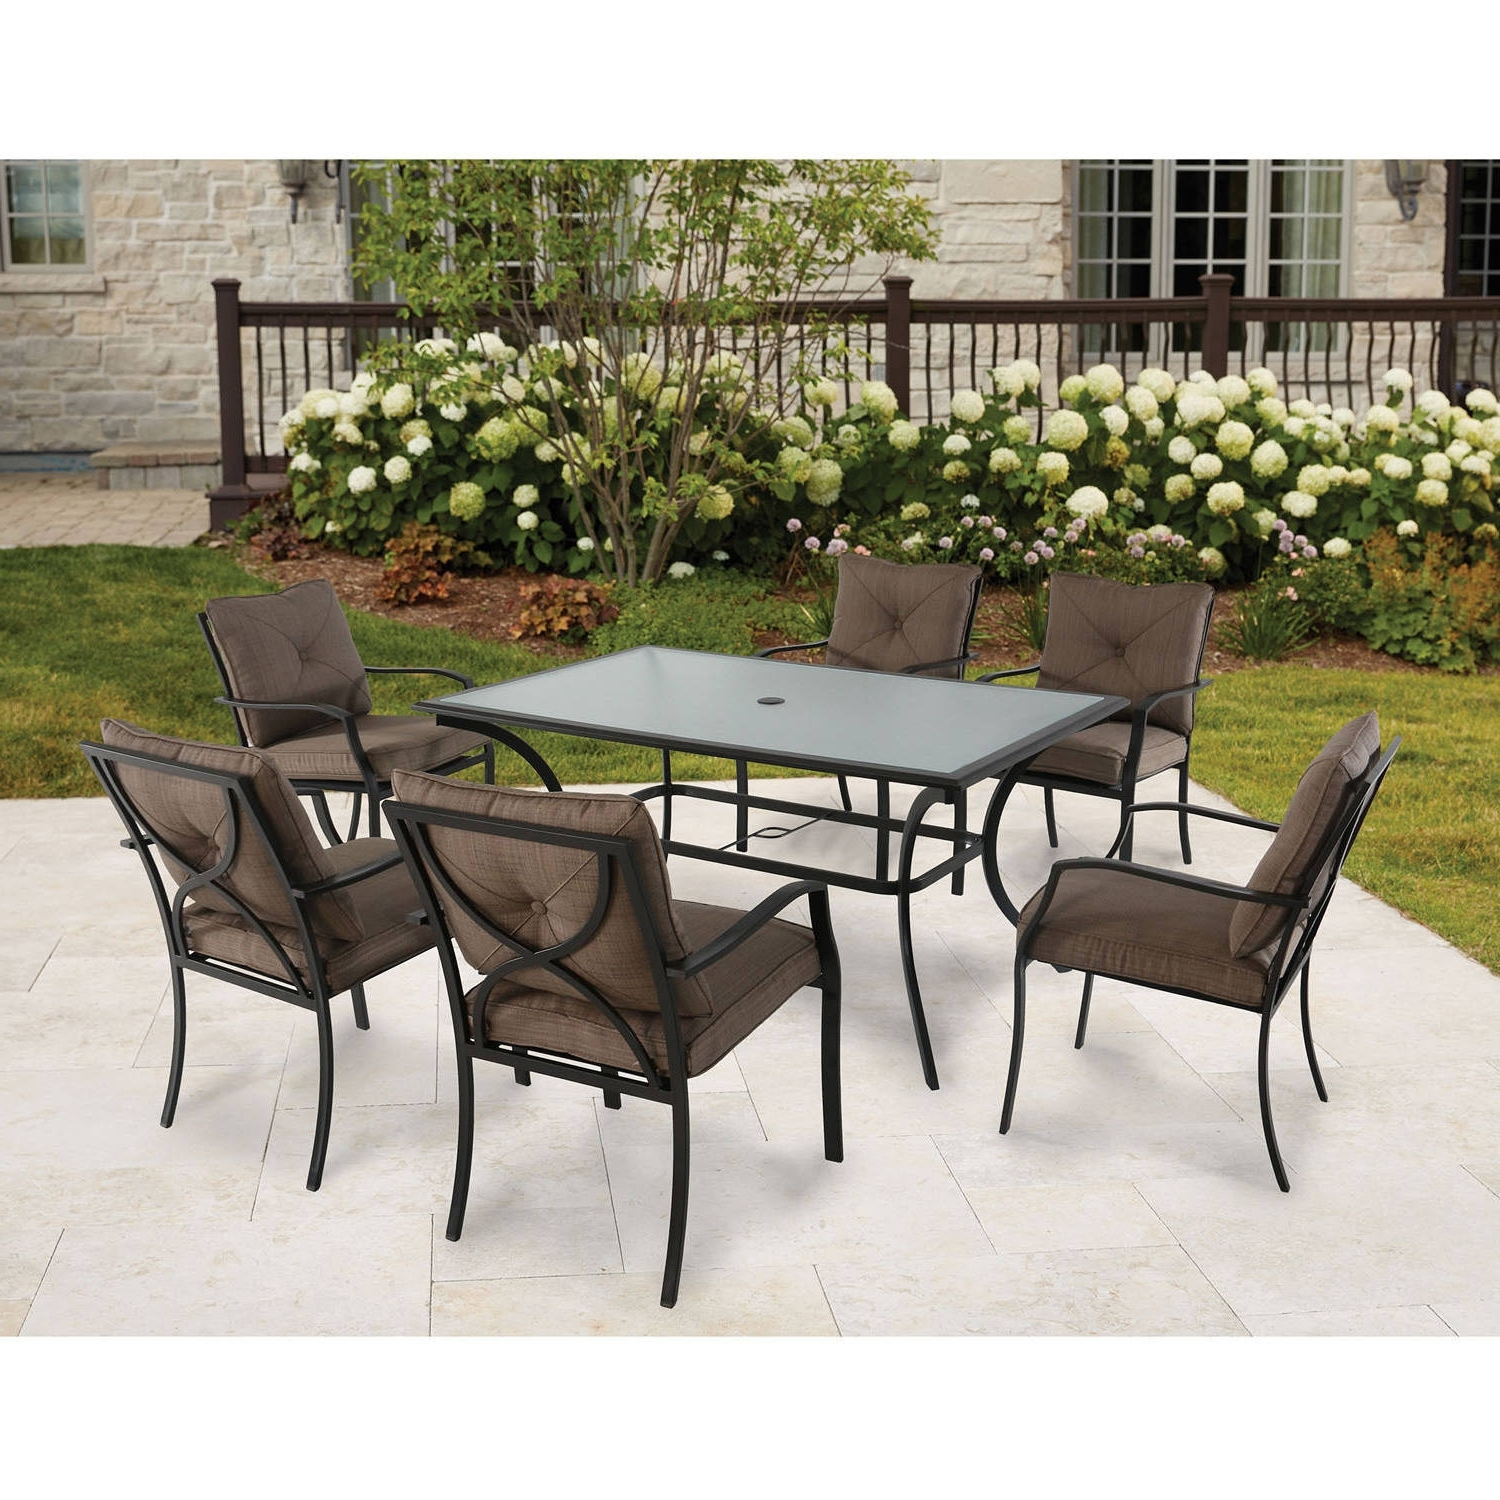 Cambridge Crawford 7 Piece Outdoor Dining Set – Walmart Throughout Most Recent Crawford 7 Piece Rectangle Dining Sets (View 12 of 25)